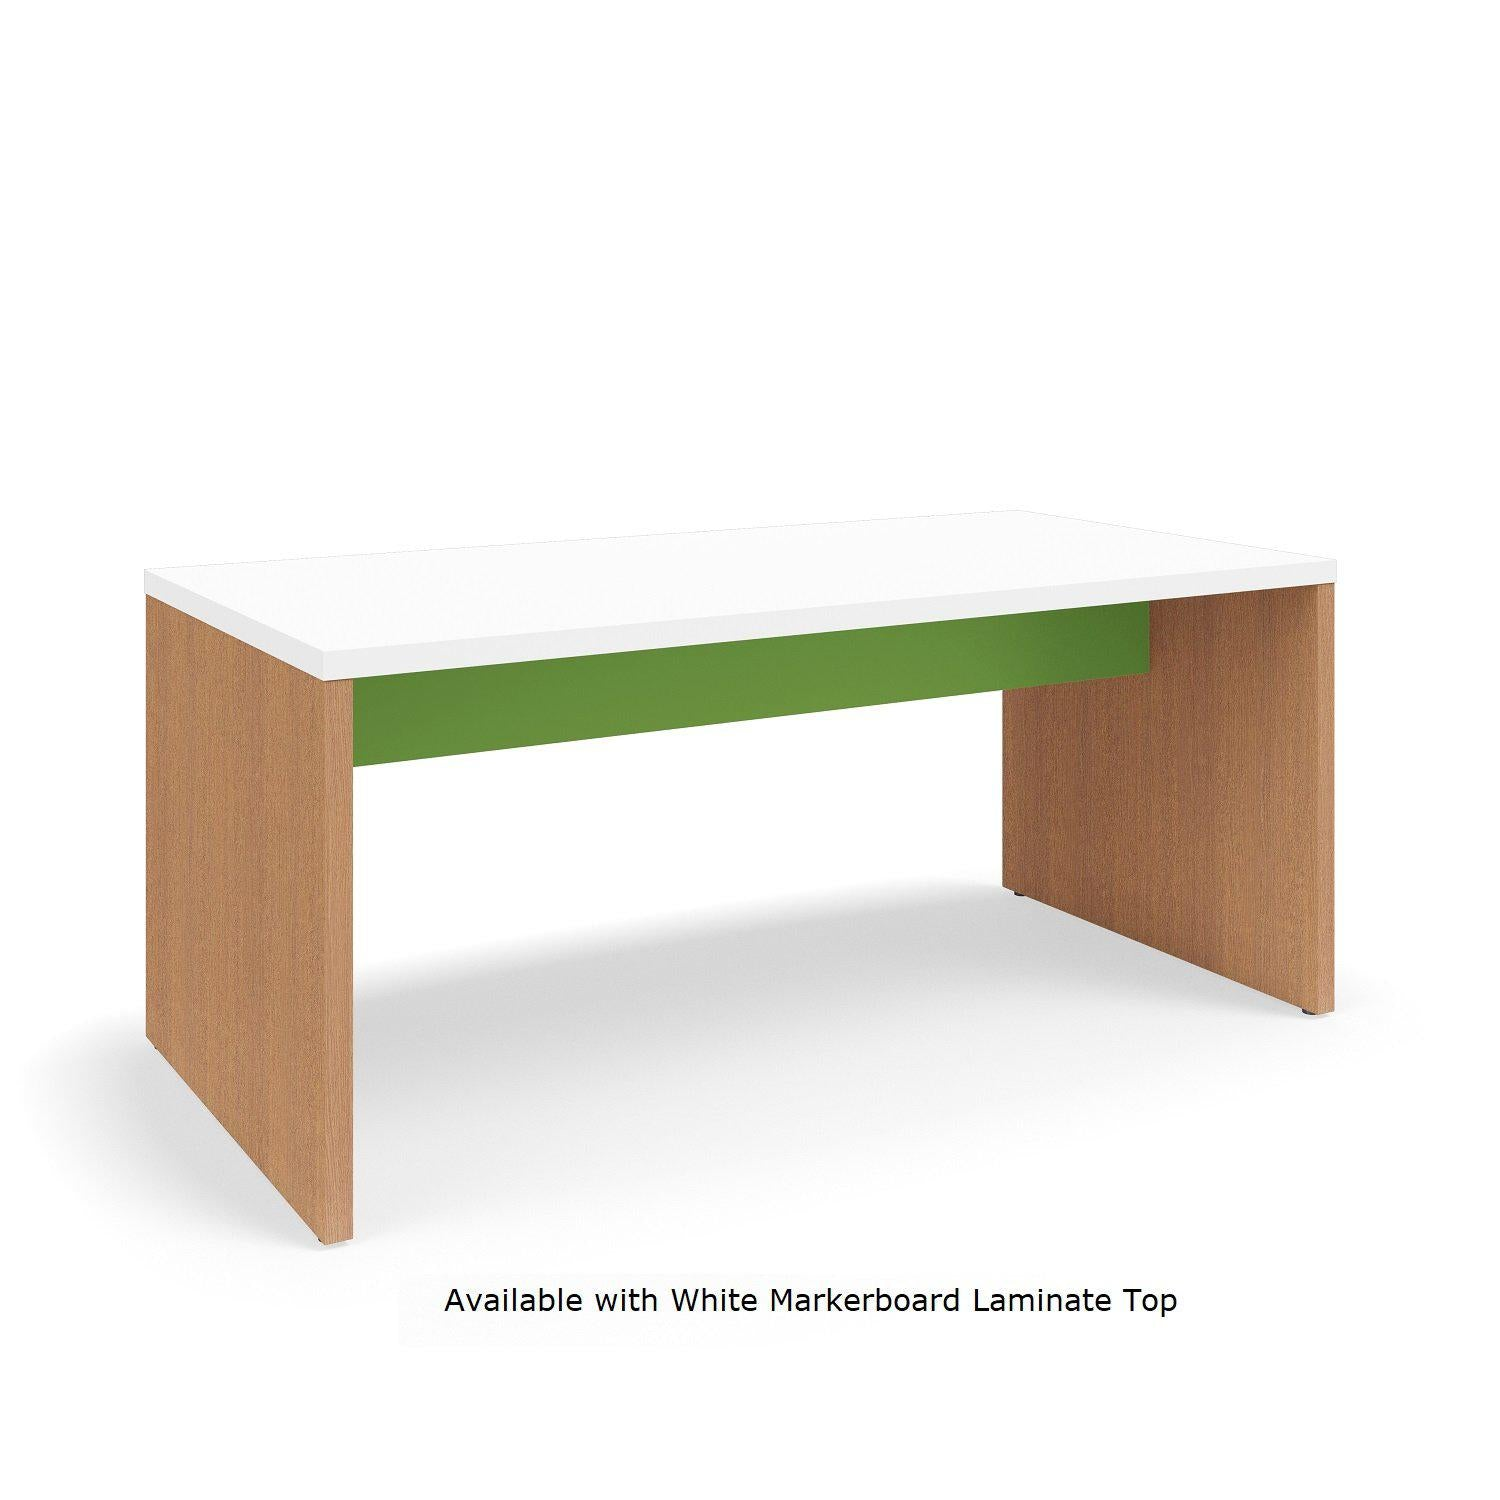 "Serenade Gathering Table, Café Height, Double-Sided, 48"" x 96"" x 42""H, Contrast Laminate"